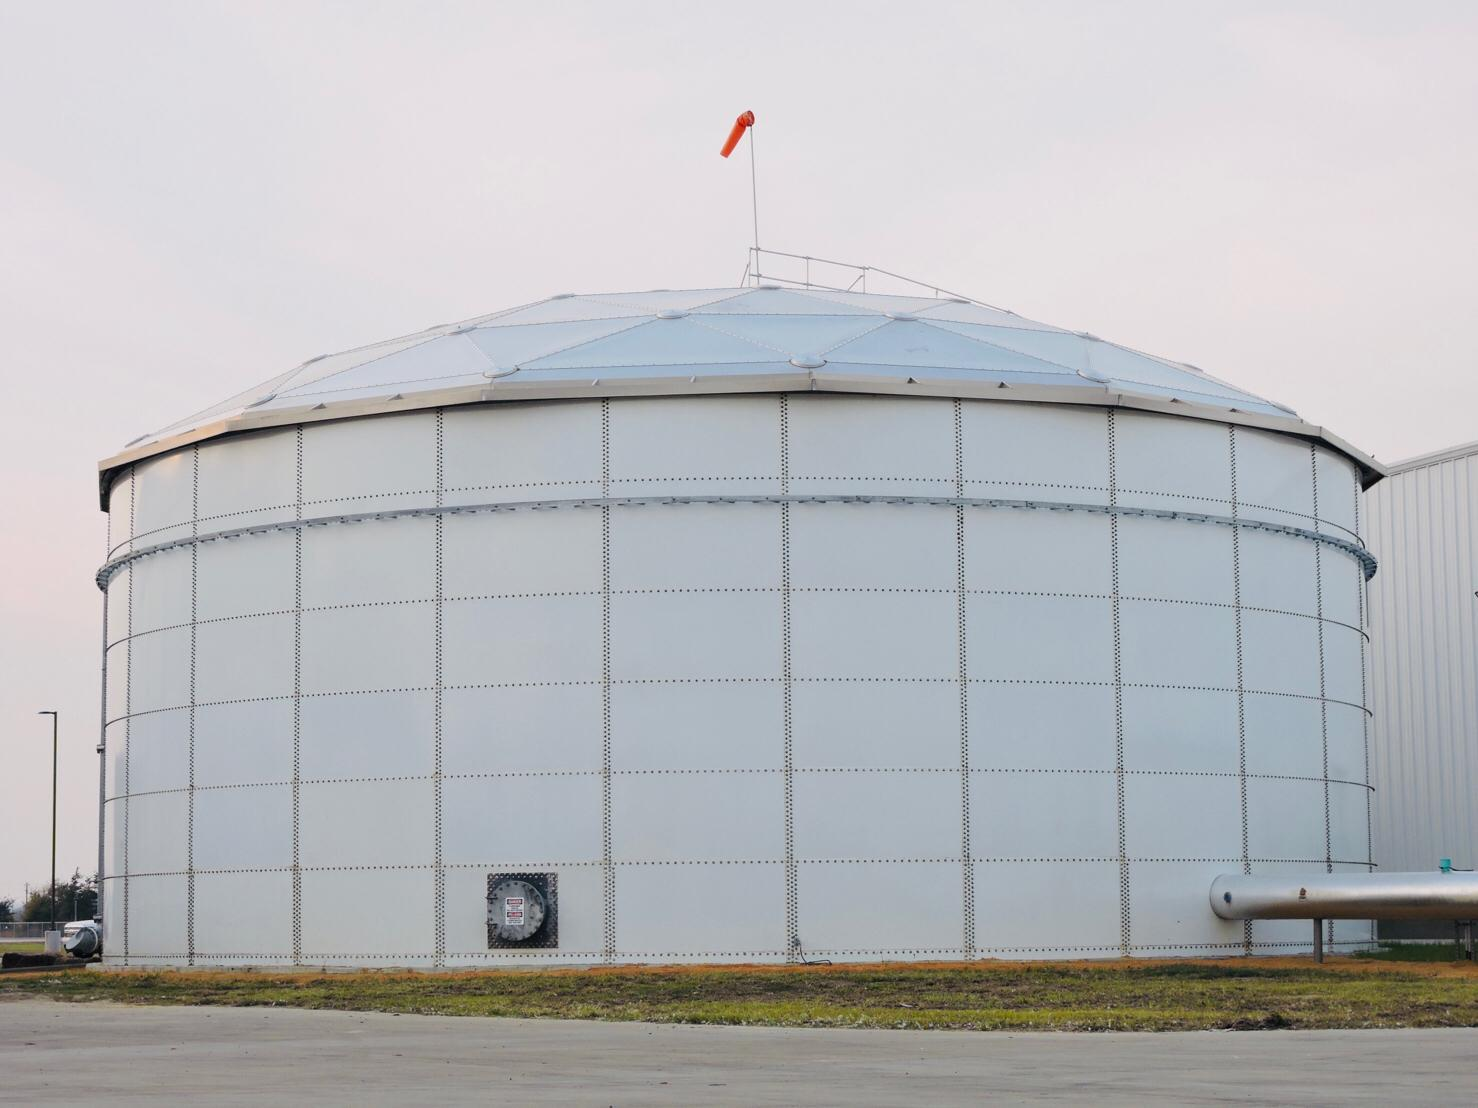 A white bolted tank with an aluminum dome and a red windsock on top